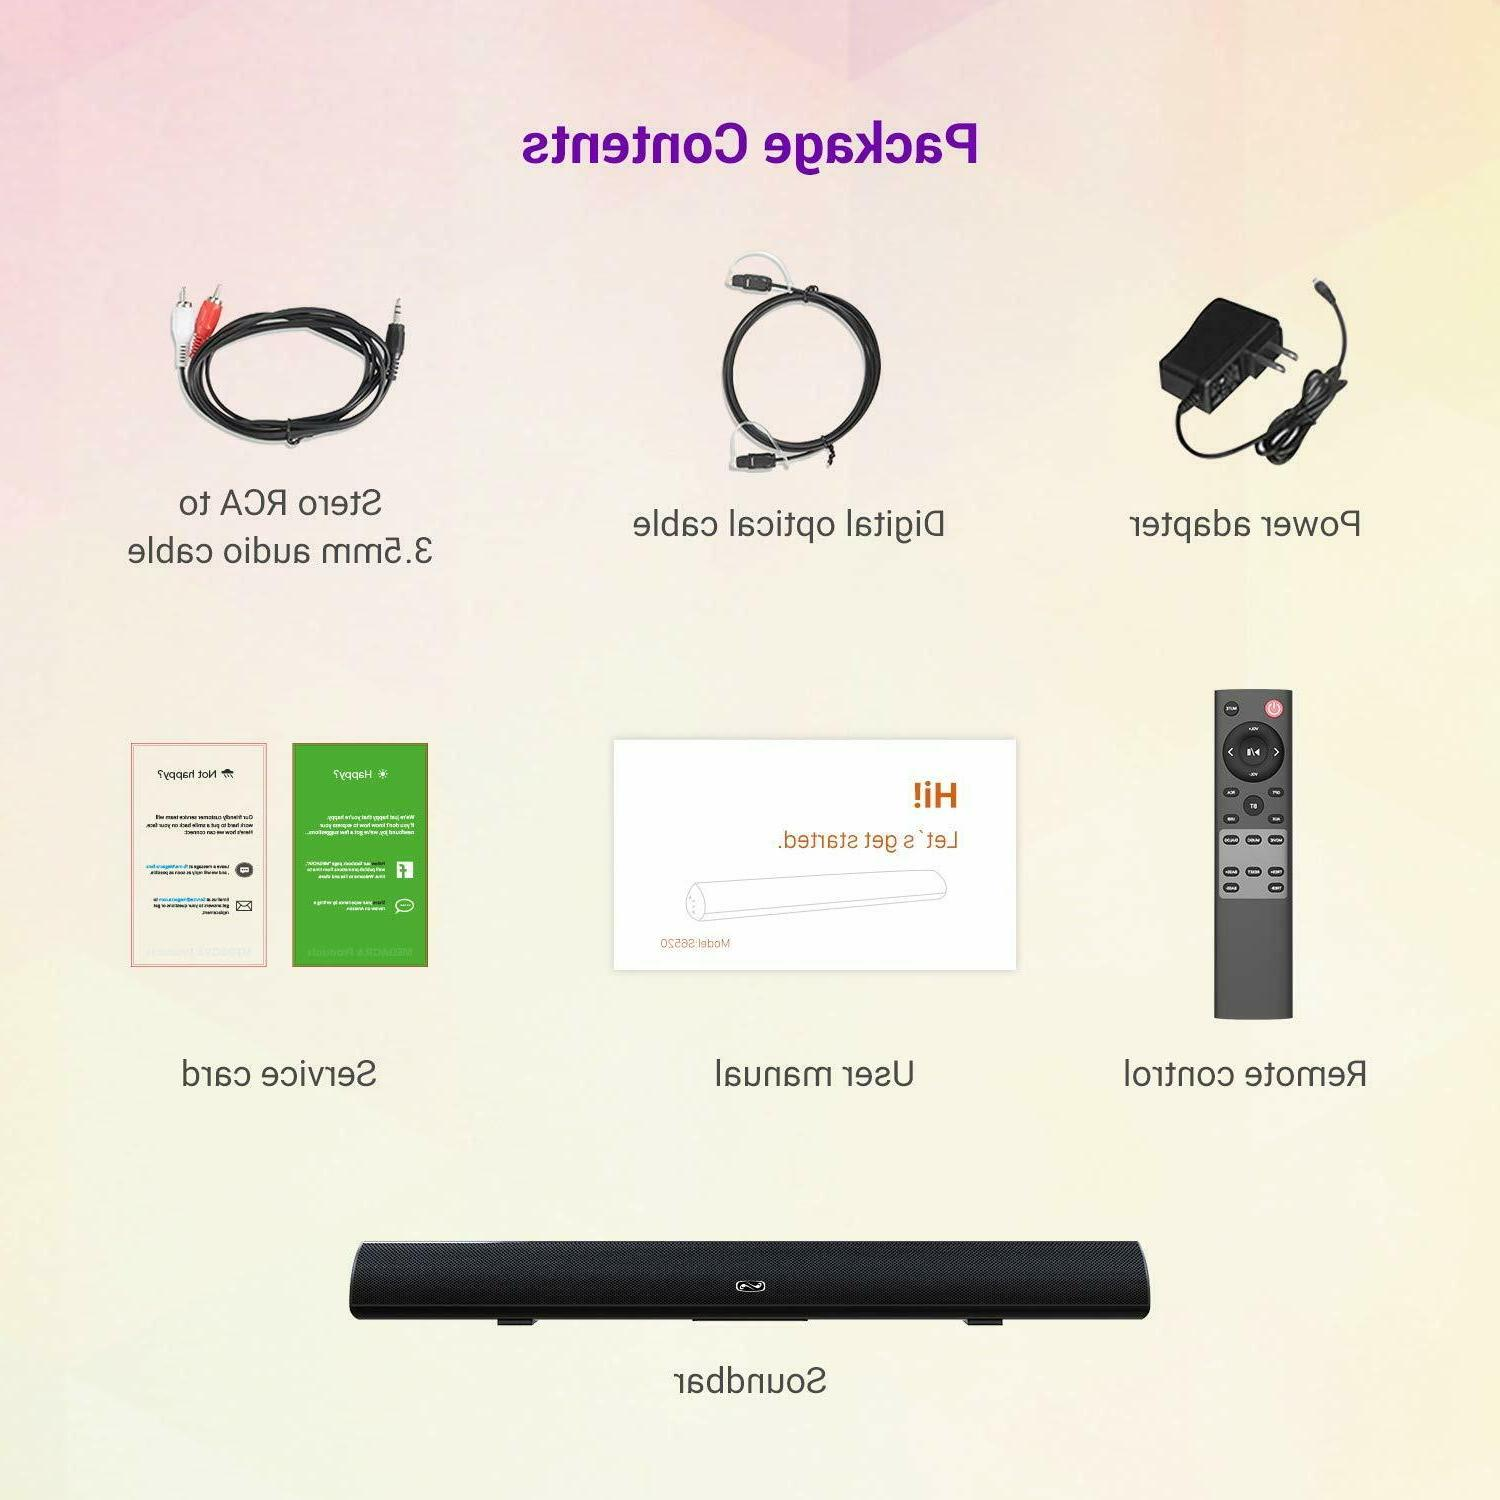 Home Theater System Wireless Surround Sound Bar For TV, PC,